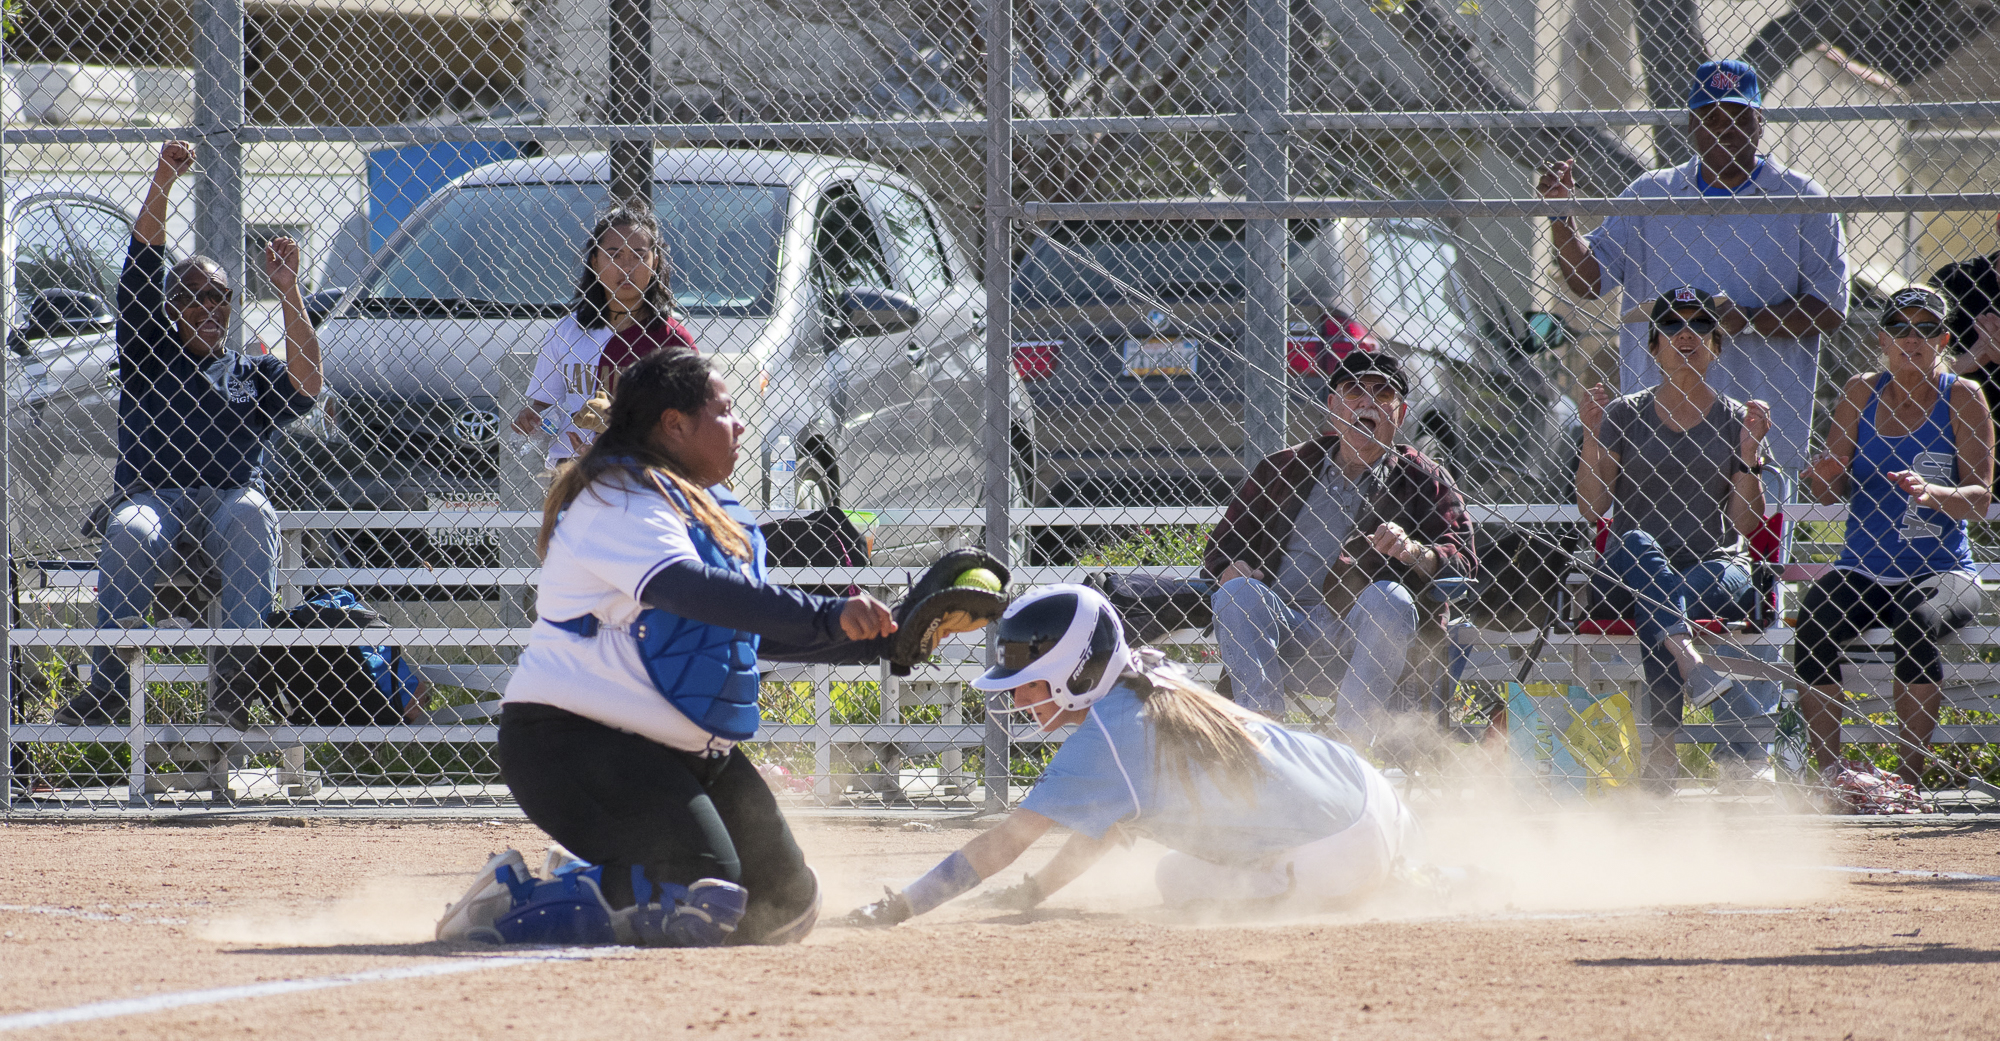 Moorpark College Raiders Lexi Brown (#4) fails to finish a run against the Santa Monica Corsairs during a softball game on Tuesday, April 10 at the John Adams Middle School Field in Santa Monica, California. The game ended with an 11-8 loss for the Corsairs, further continuing their six-game loss. (Ethan Lauren/Corsair Photo)